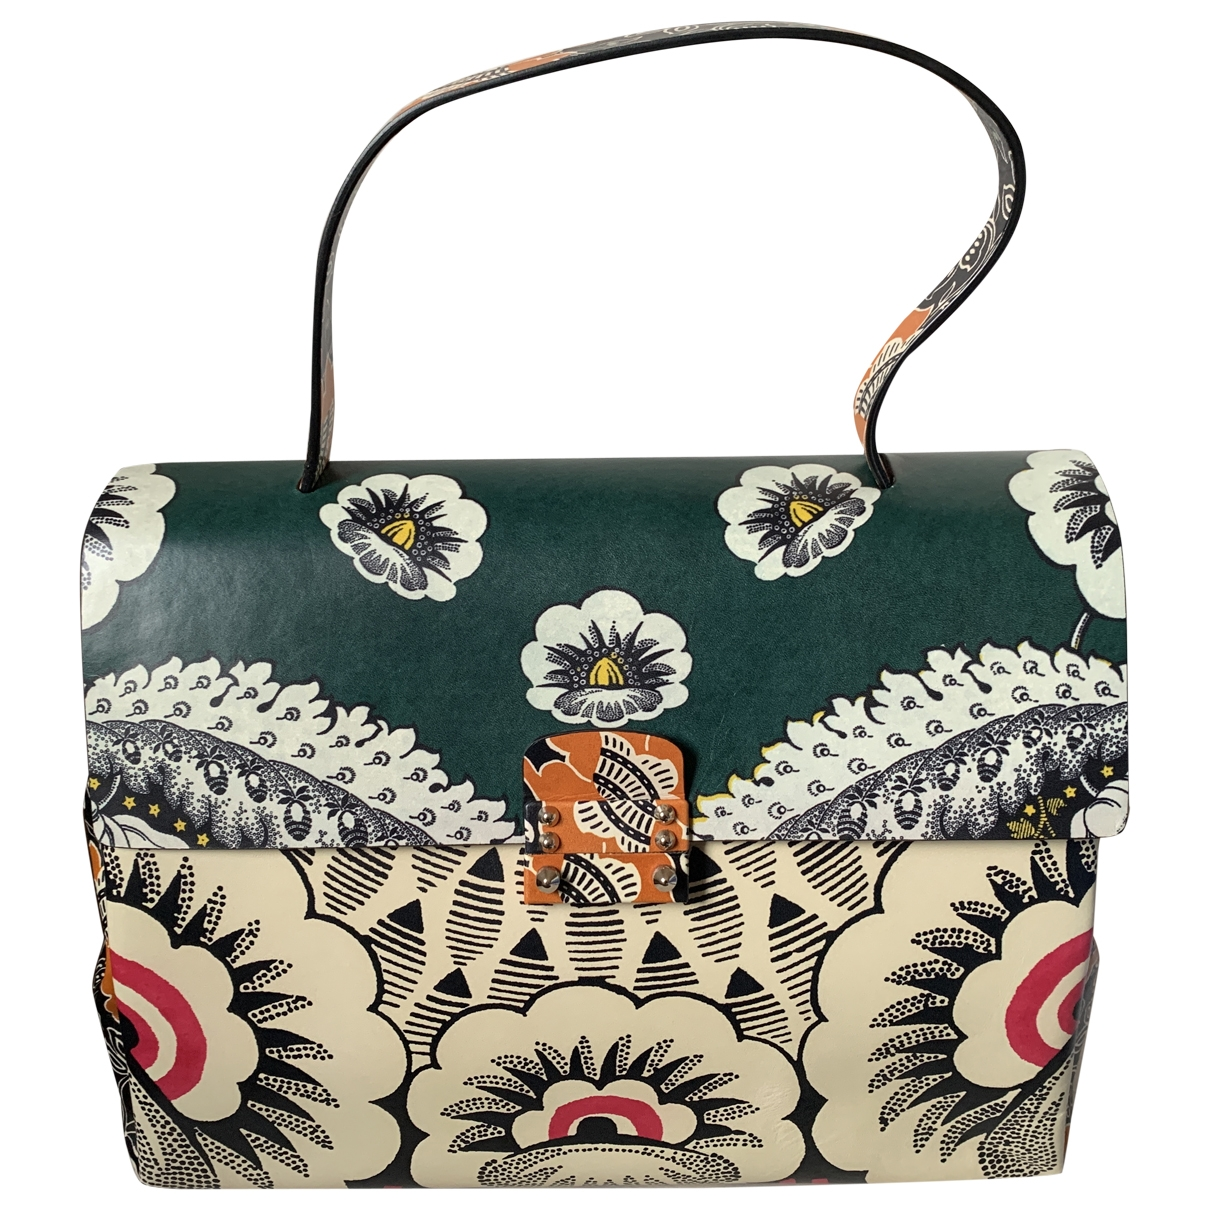 Valentino Garavani \N Multicolour Leather handbag for Women \N